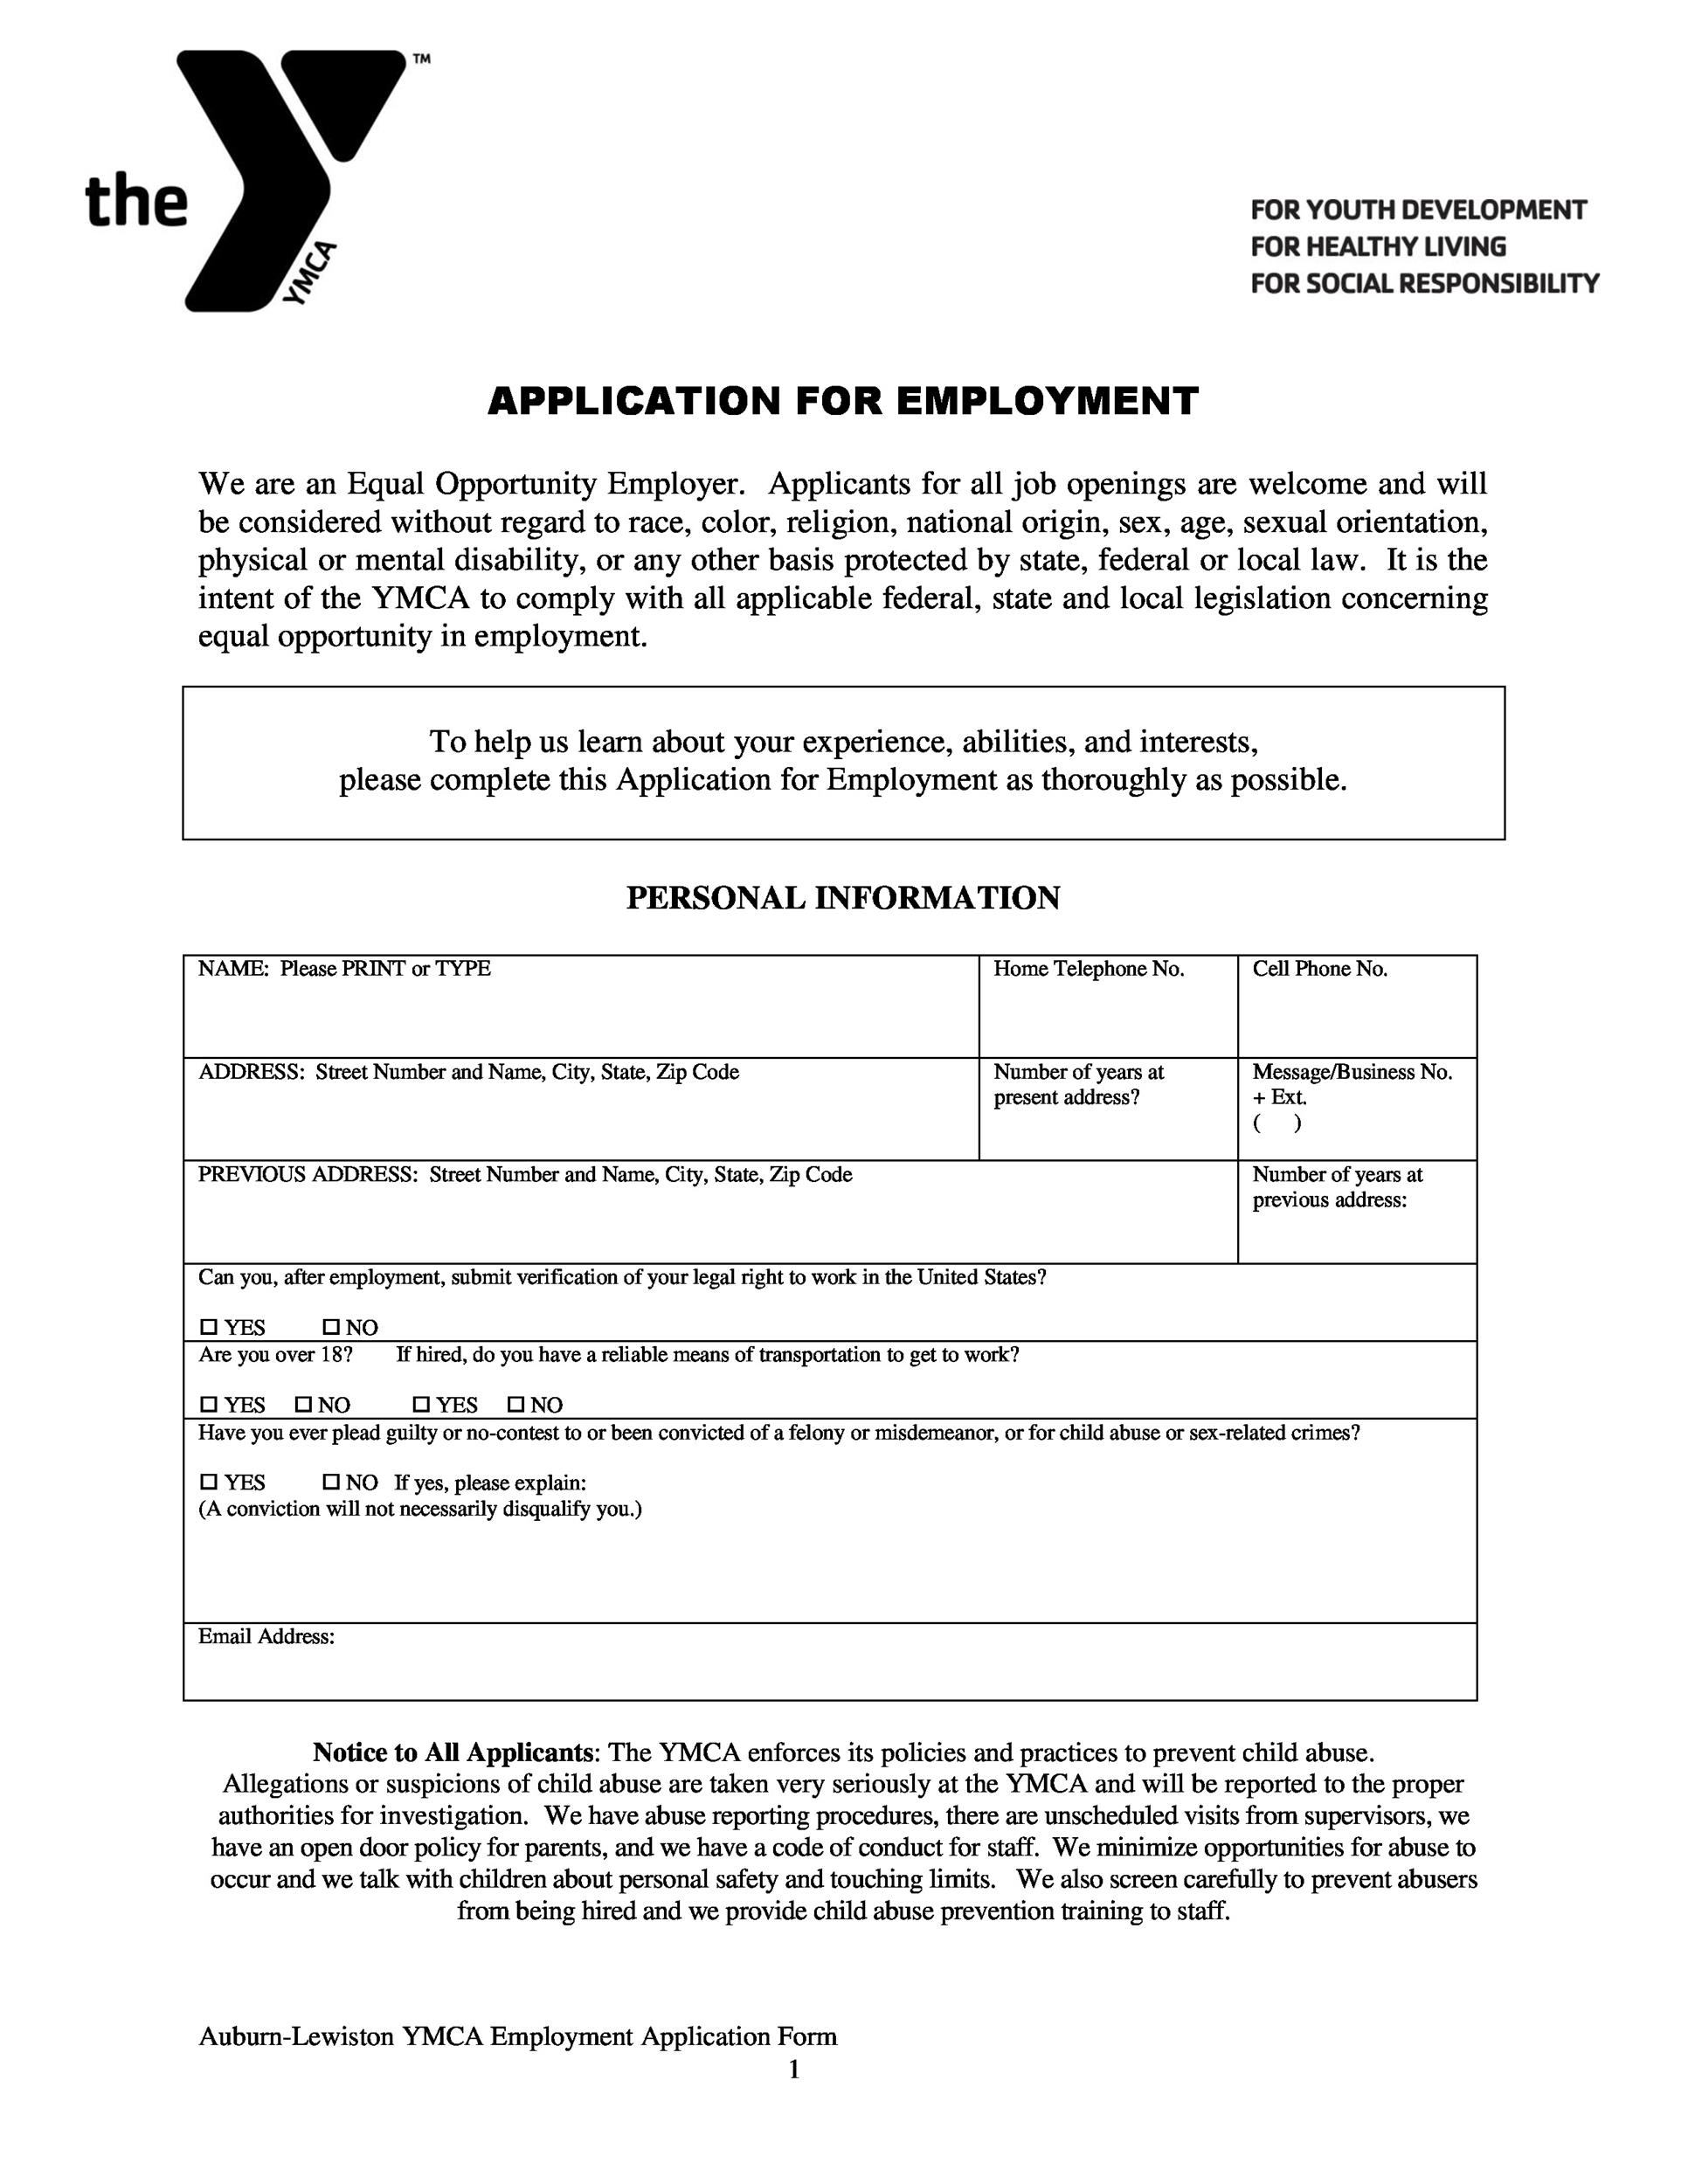 employment-application-template-16 Job Application Form Reasons For Applying on small business job application form, generic job application form, starbucks job application form, amazon job application form, for job interview,